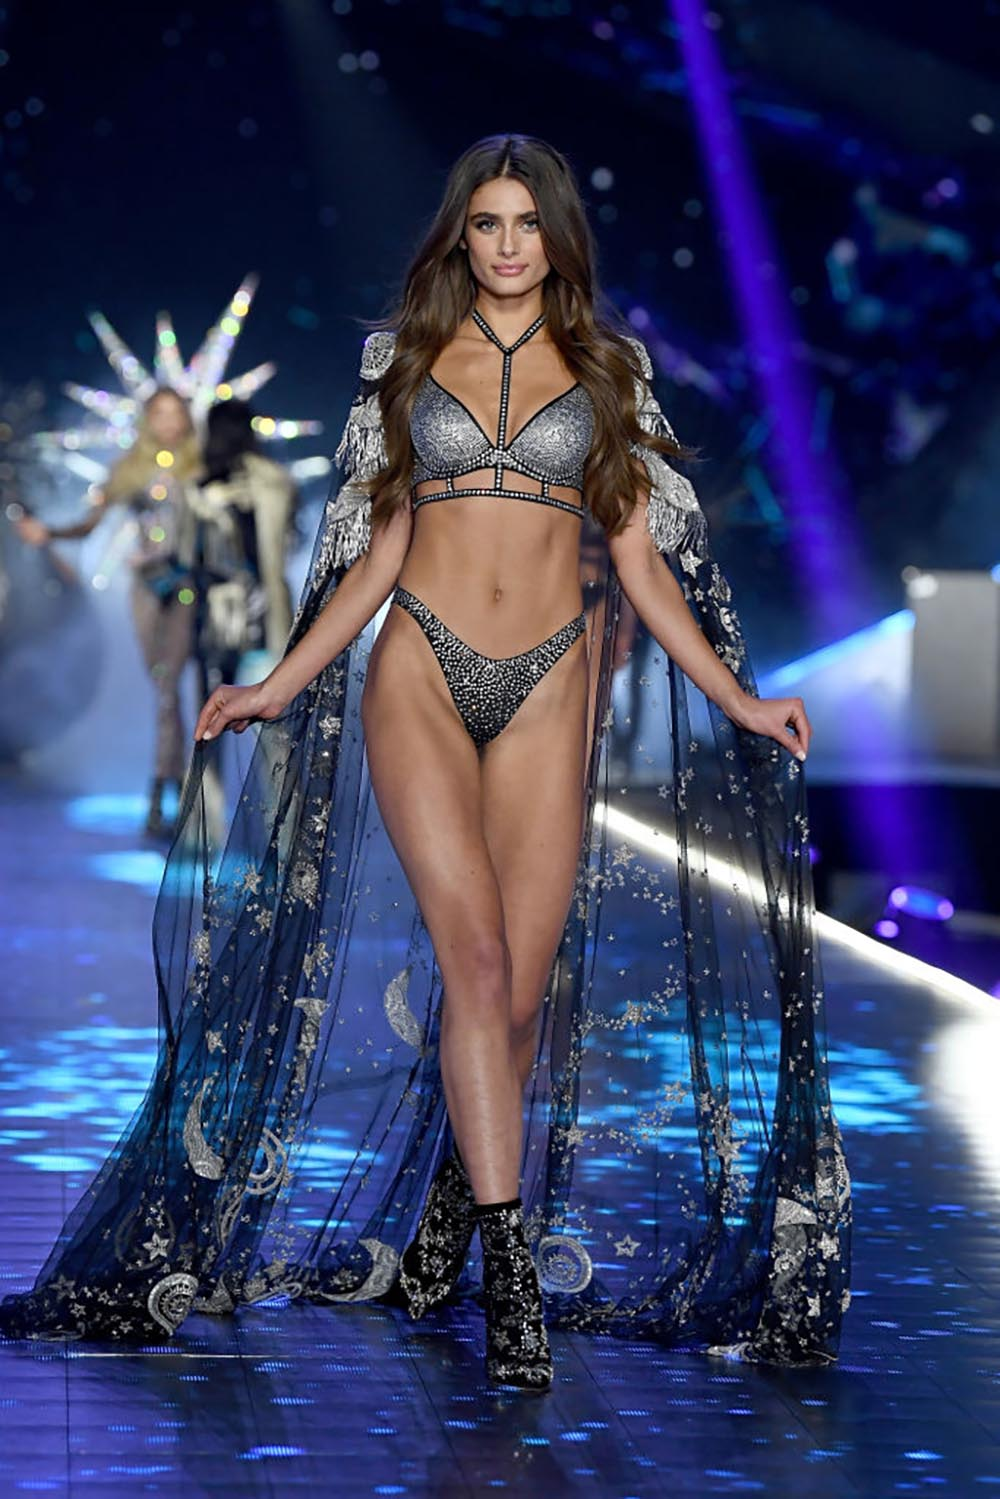 How-these-Victorias-Secret-models-look-THAT-amazing-Taylor-Hill